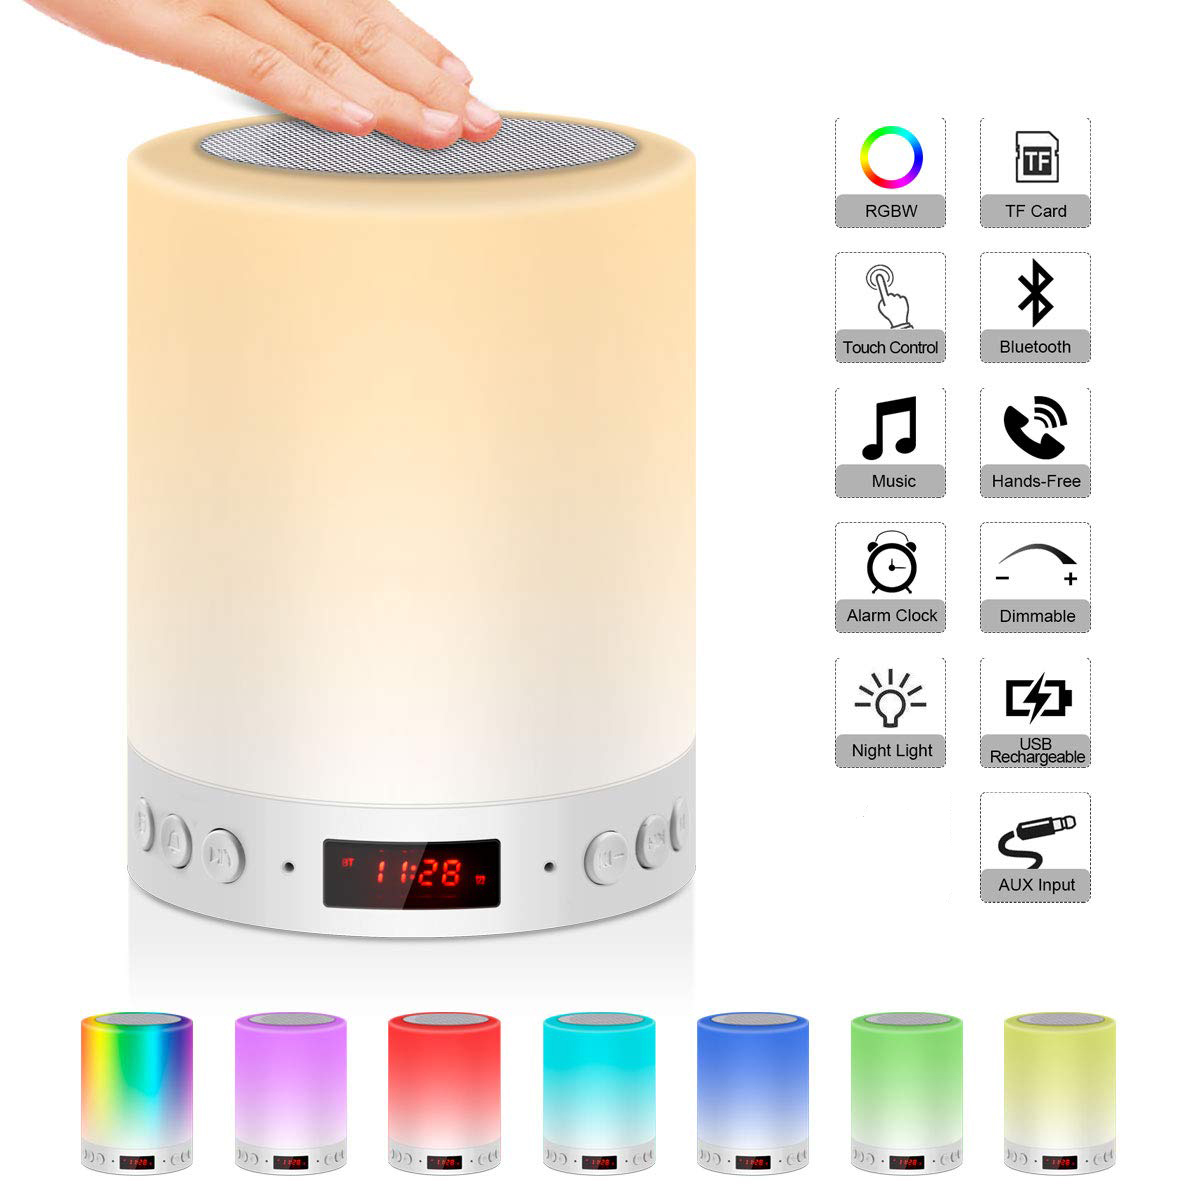 5 In 1 Portable Bedside Lamp Table Lamp Bluetooth Speaker Music USB FM Radio Alarm Clock Digital Light LED Multicolor Gift